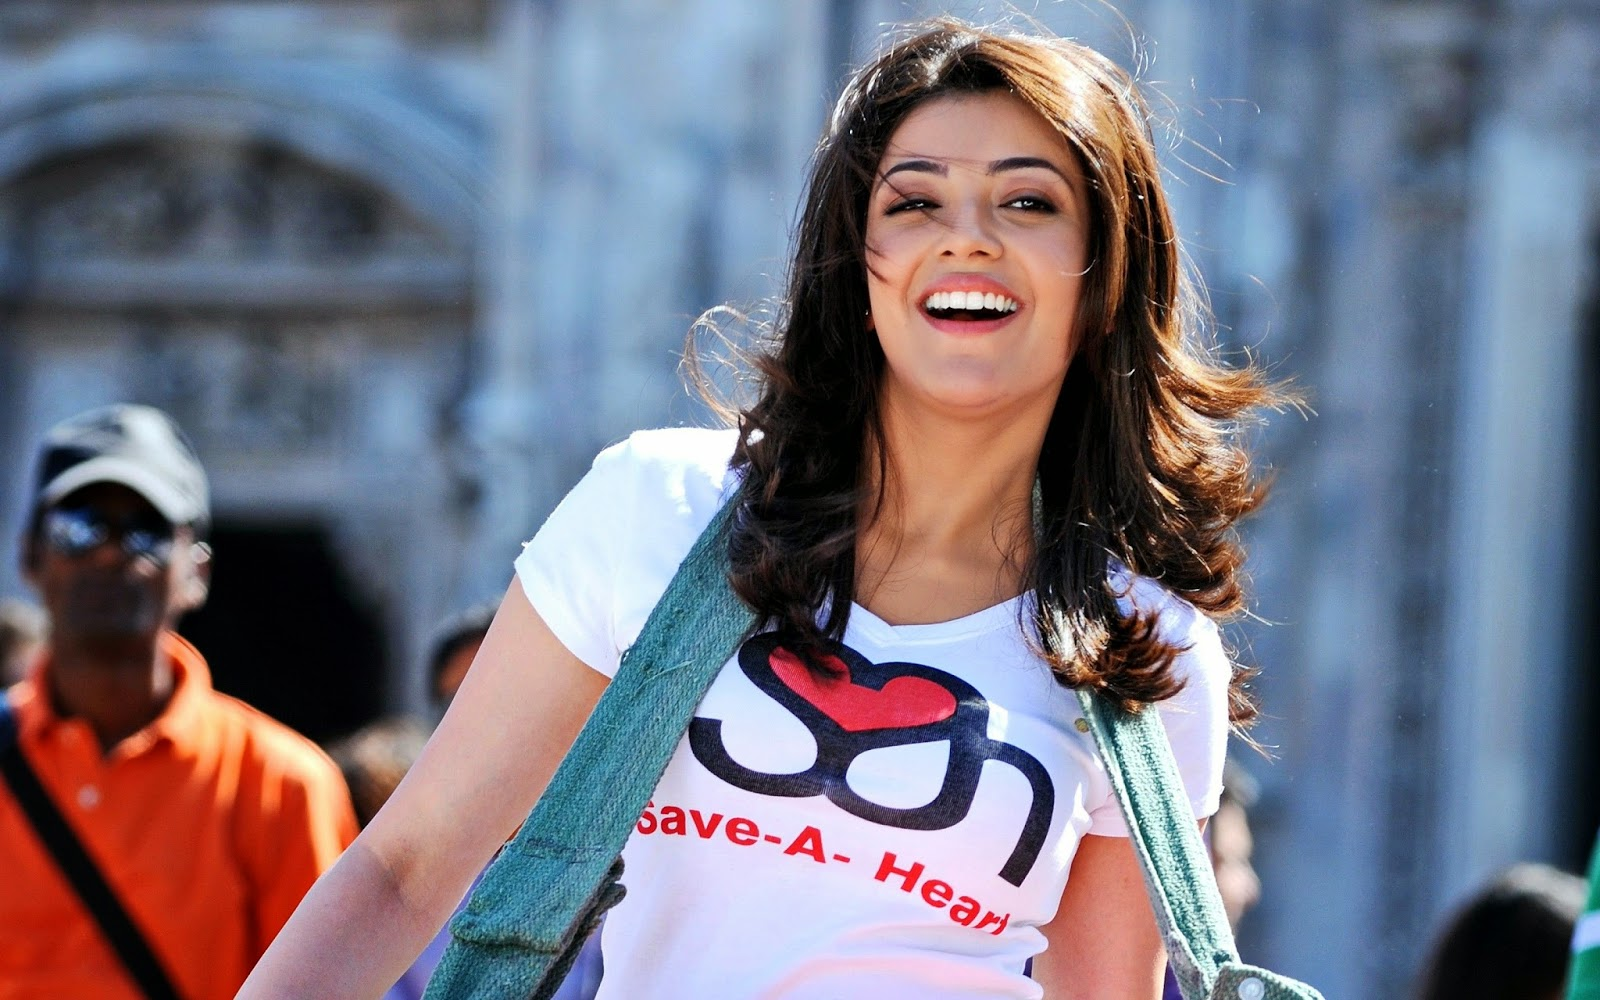 Kajal Aggarwal Upcoming Movies List 2015, 2016, 2017 & Release Dates, Actor, Star Cast